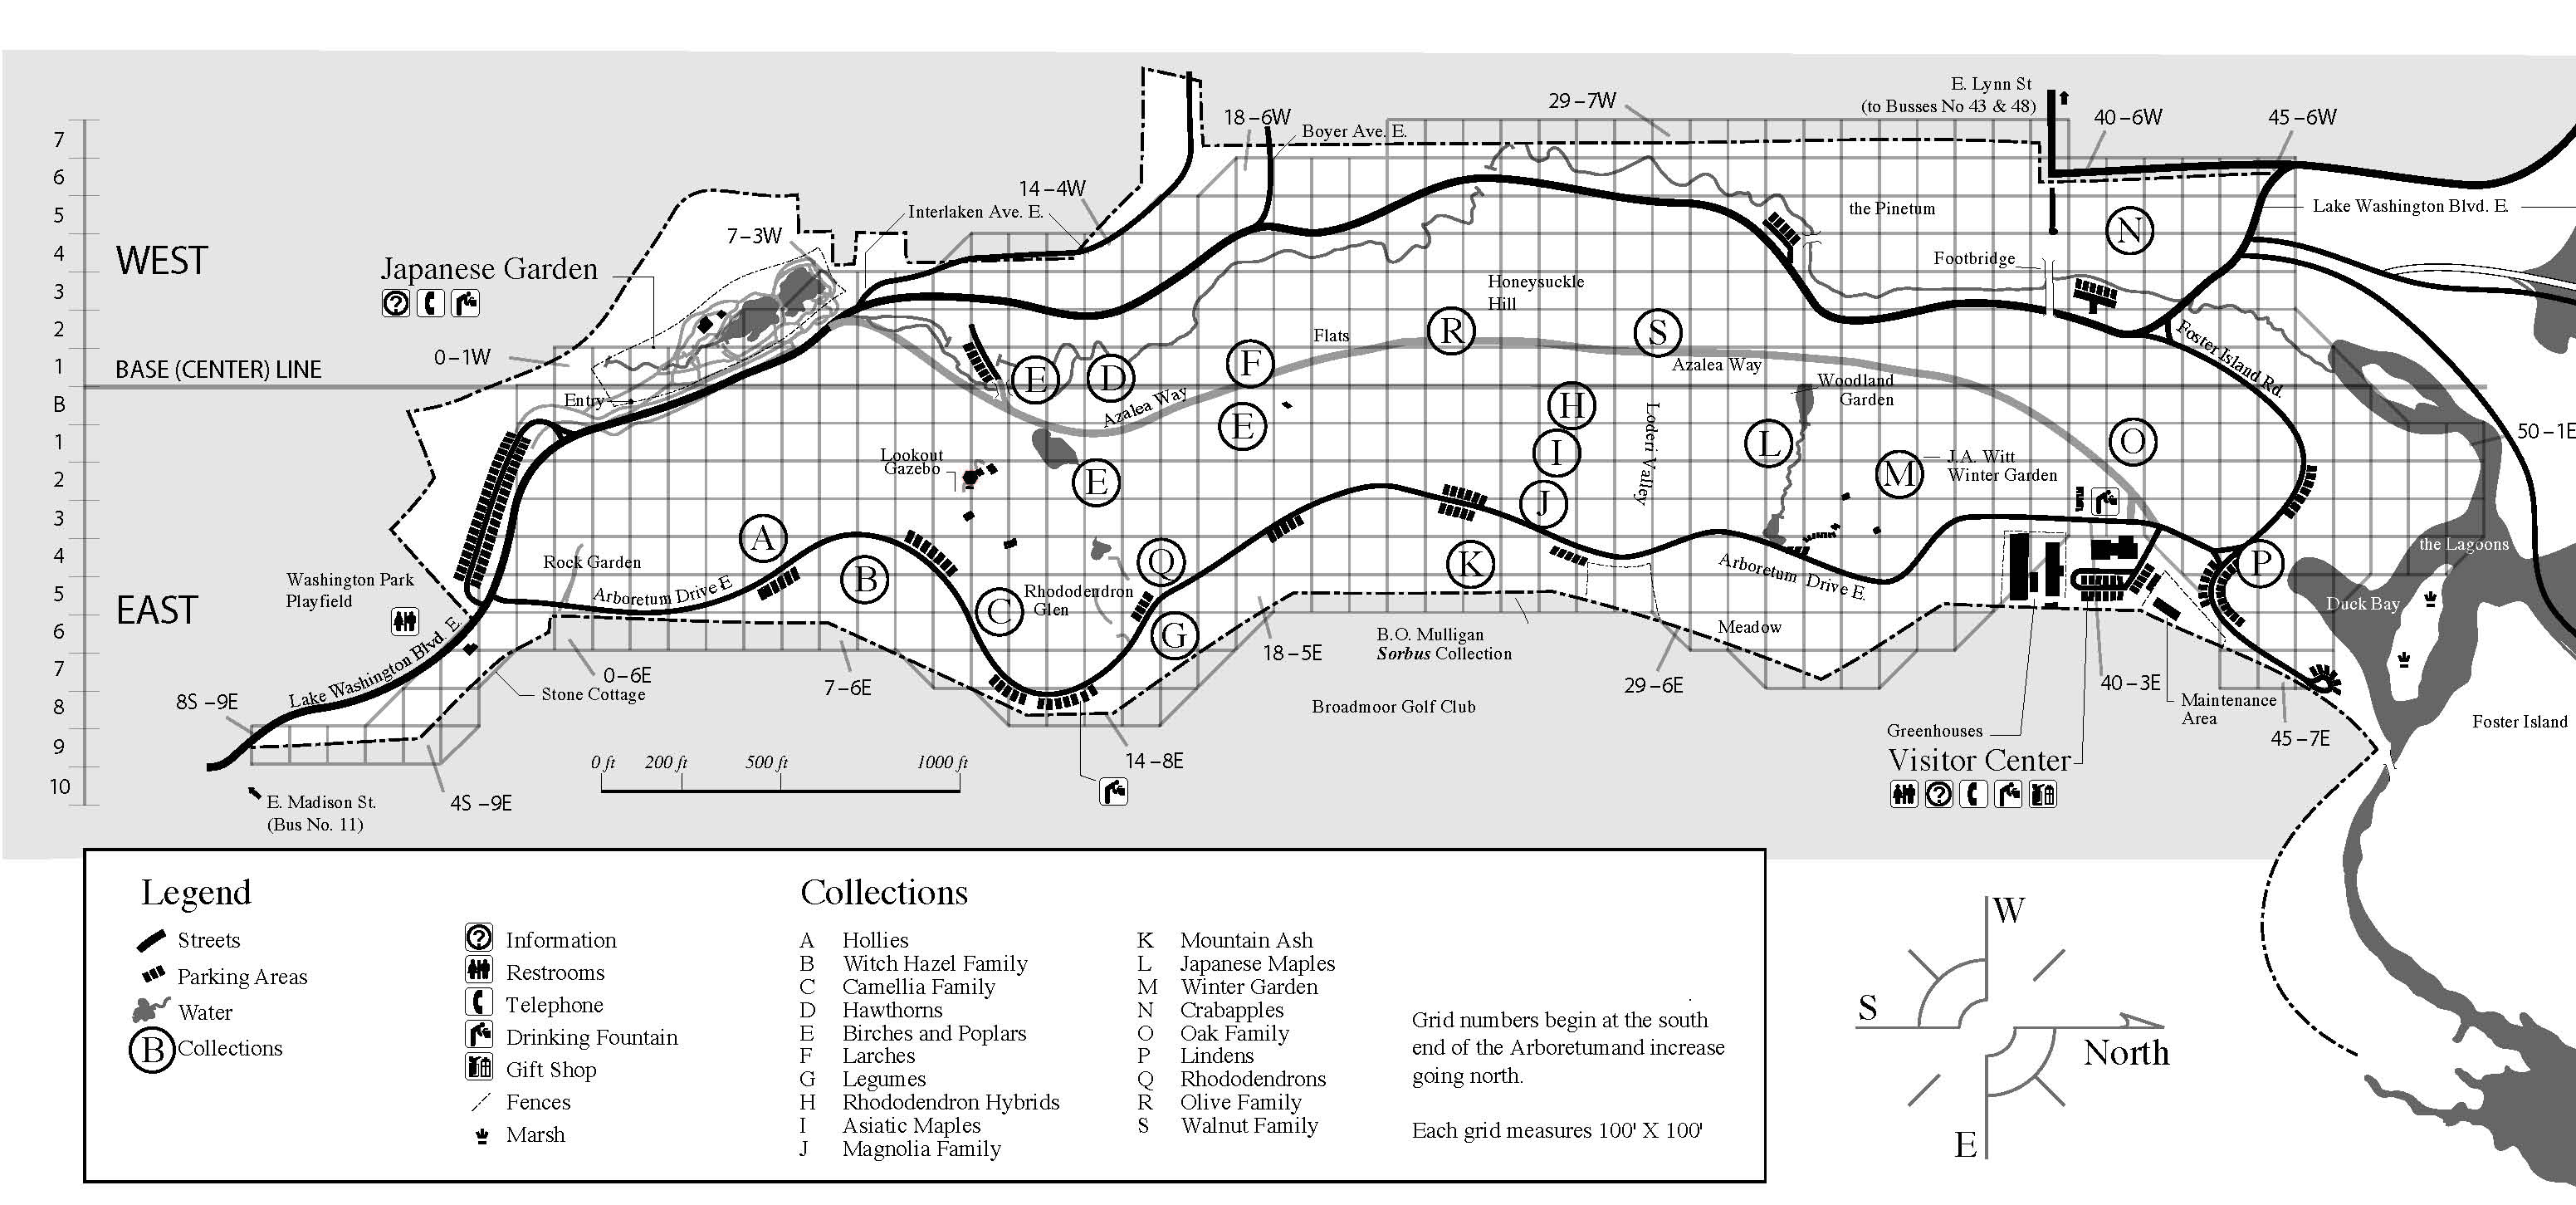 In the Arboretum with the total station and other milestones Define Map Grid on